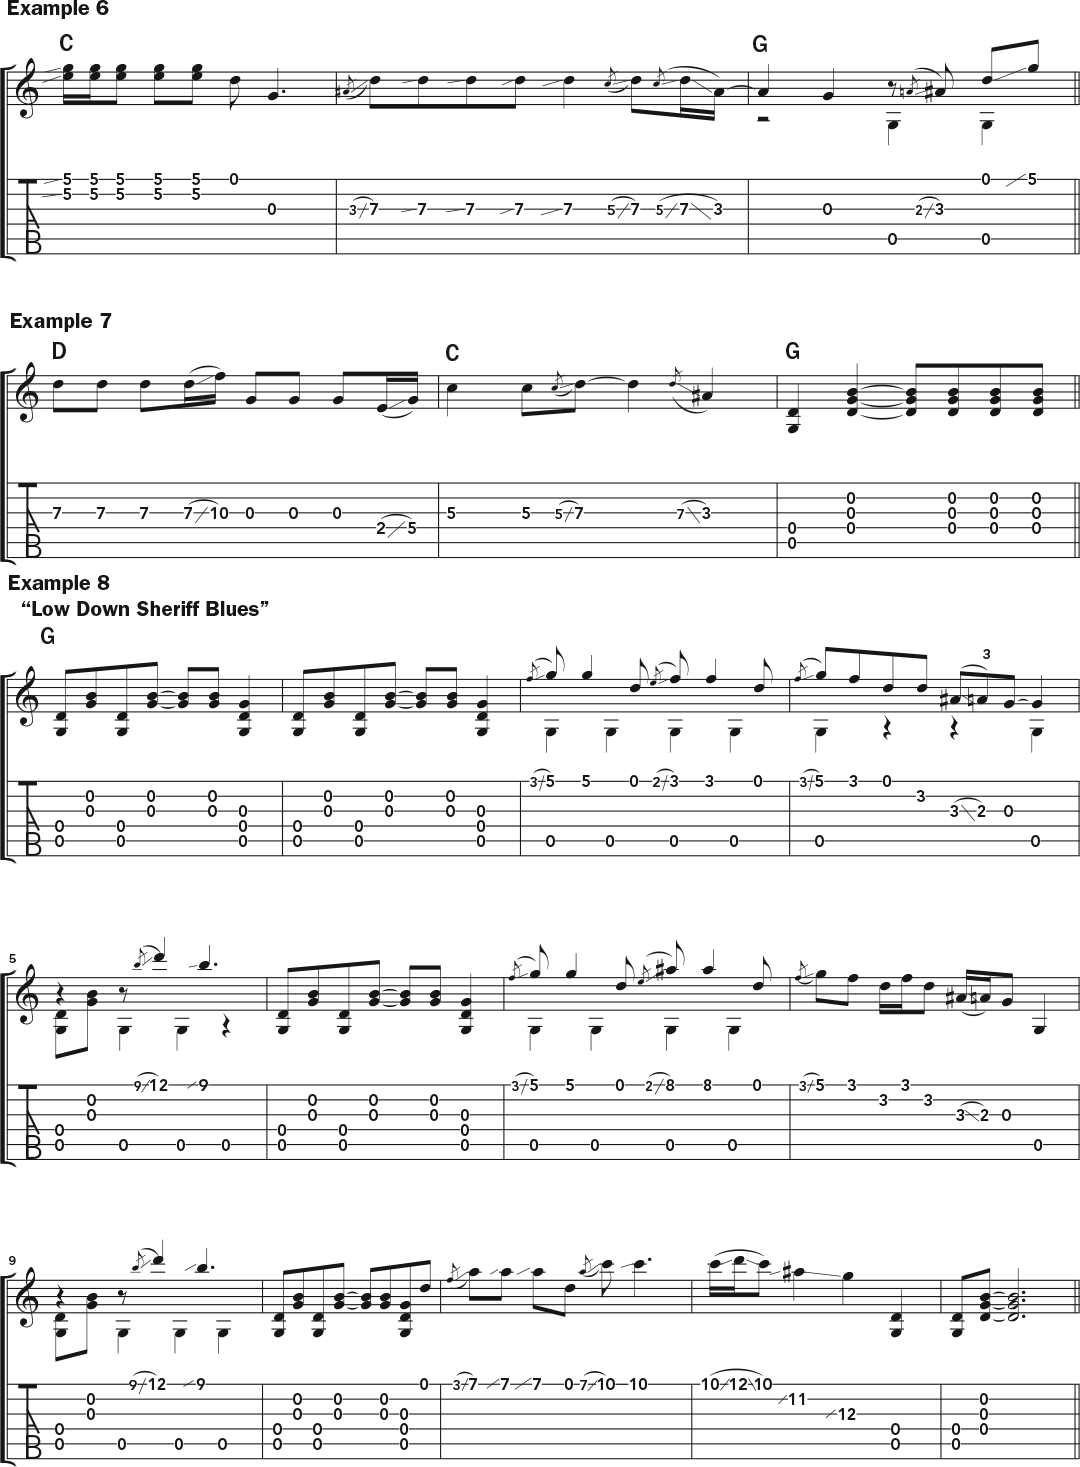 Musical examples 6 through 8 in standard notation and TAB